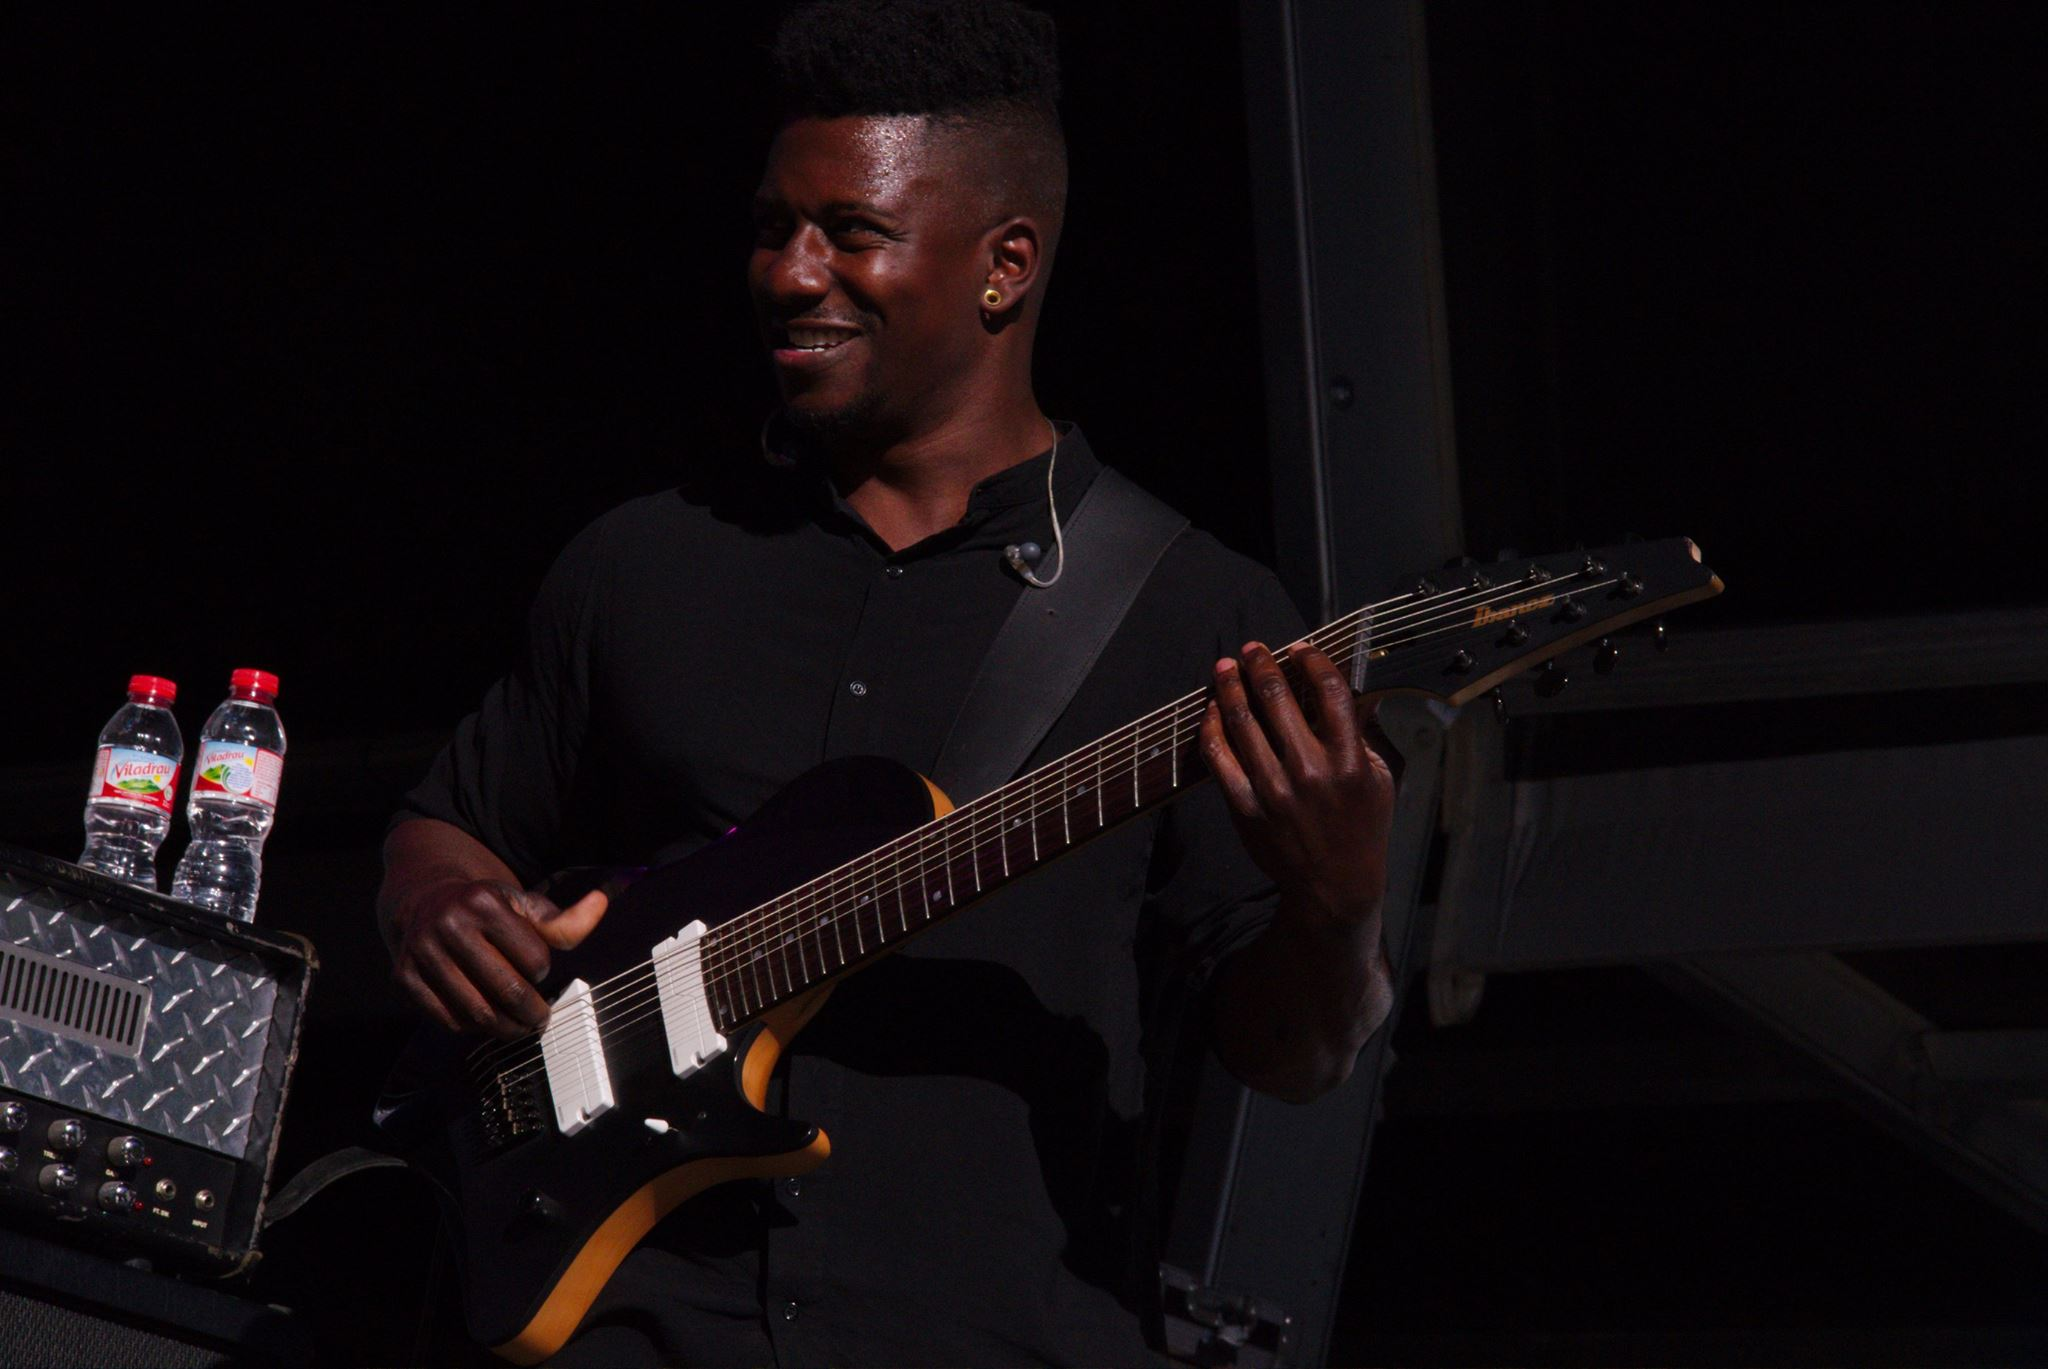 Animals As Leaders @ Be Prog My Friend, Barcelona, 30 juni 2017